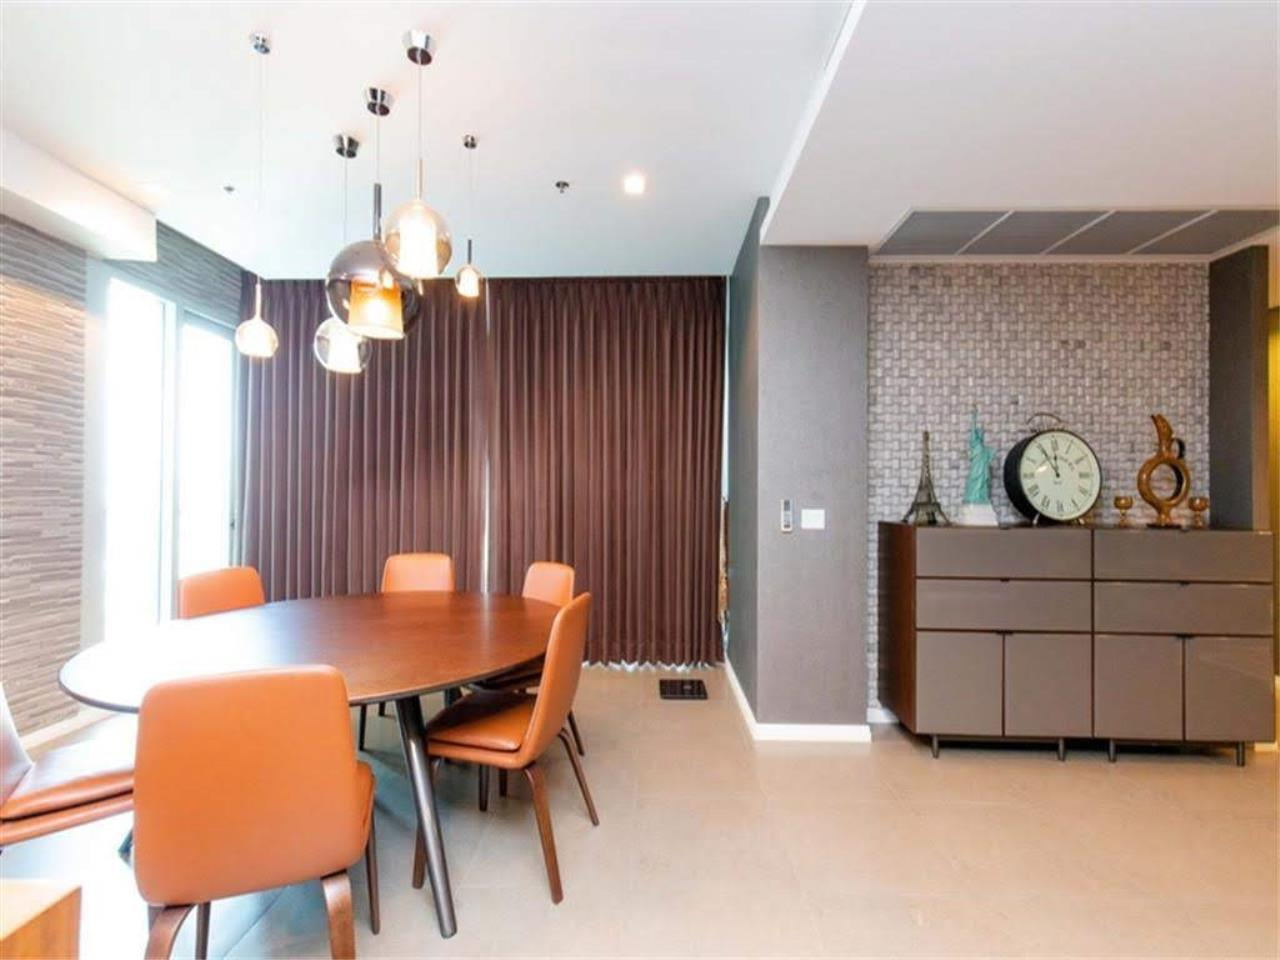 Bestbkkcondos Agency's The River - 233,8 sqm - For Sale : 52 000 000 THB - 3 Bedrooms 12